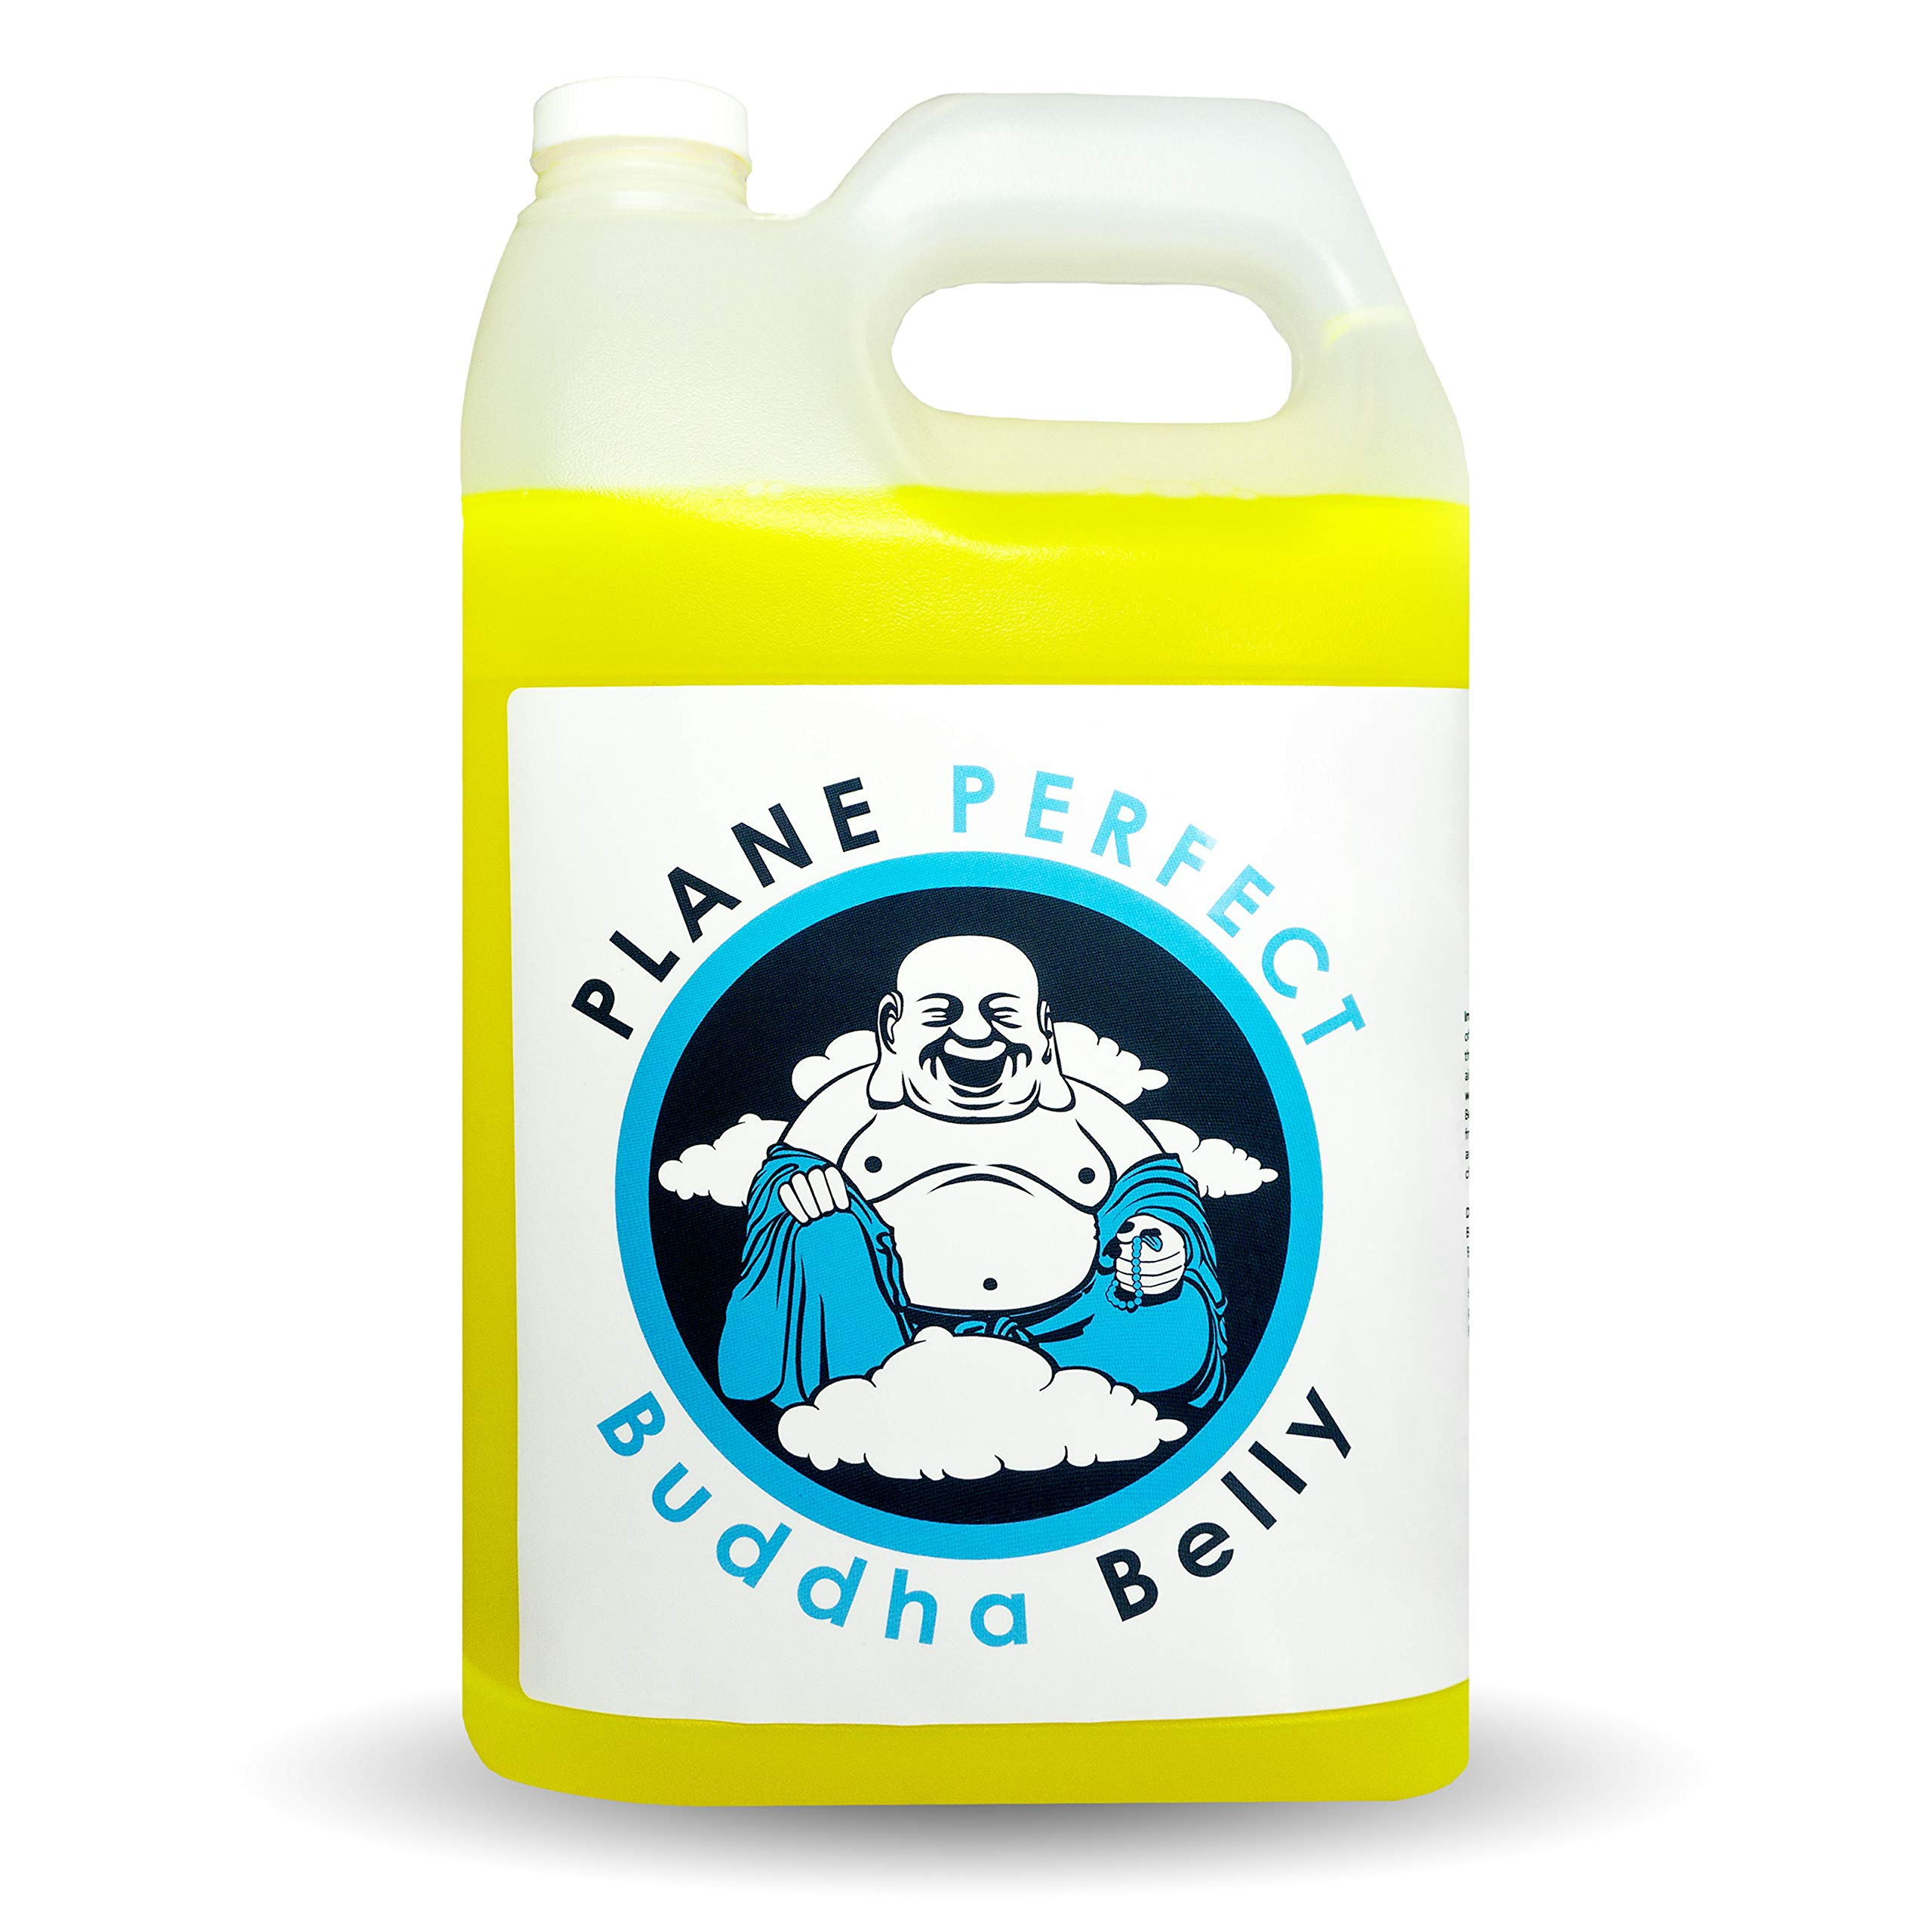 Plane Perfect Buddha Belly Plant Based Degreaser Aviation, Automotive and Motorcycle Cleaner Removes Oil, Dirt, Grime, Bugs, Motor Engine and Auto Exhaust Stains and More (Gallon Refill) by Plane Perfect